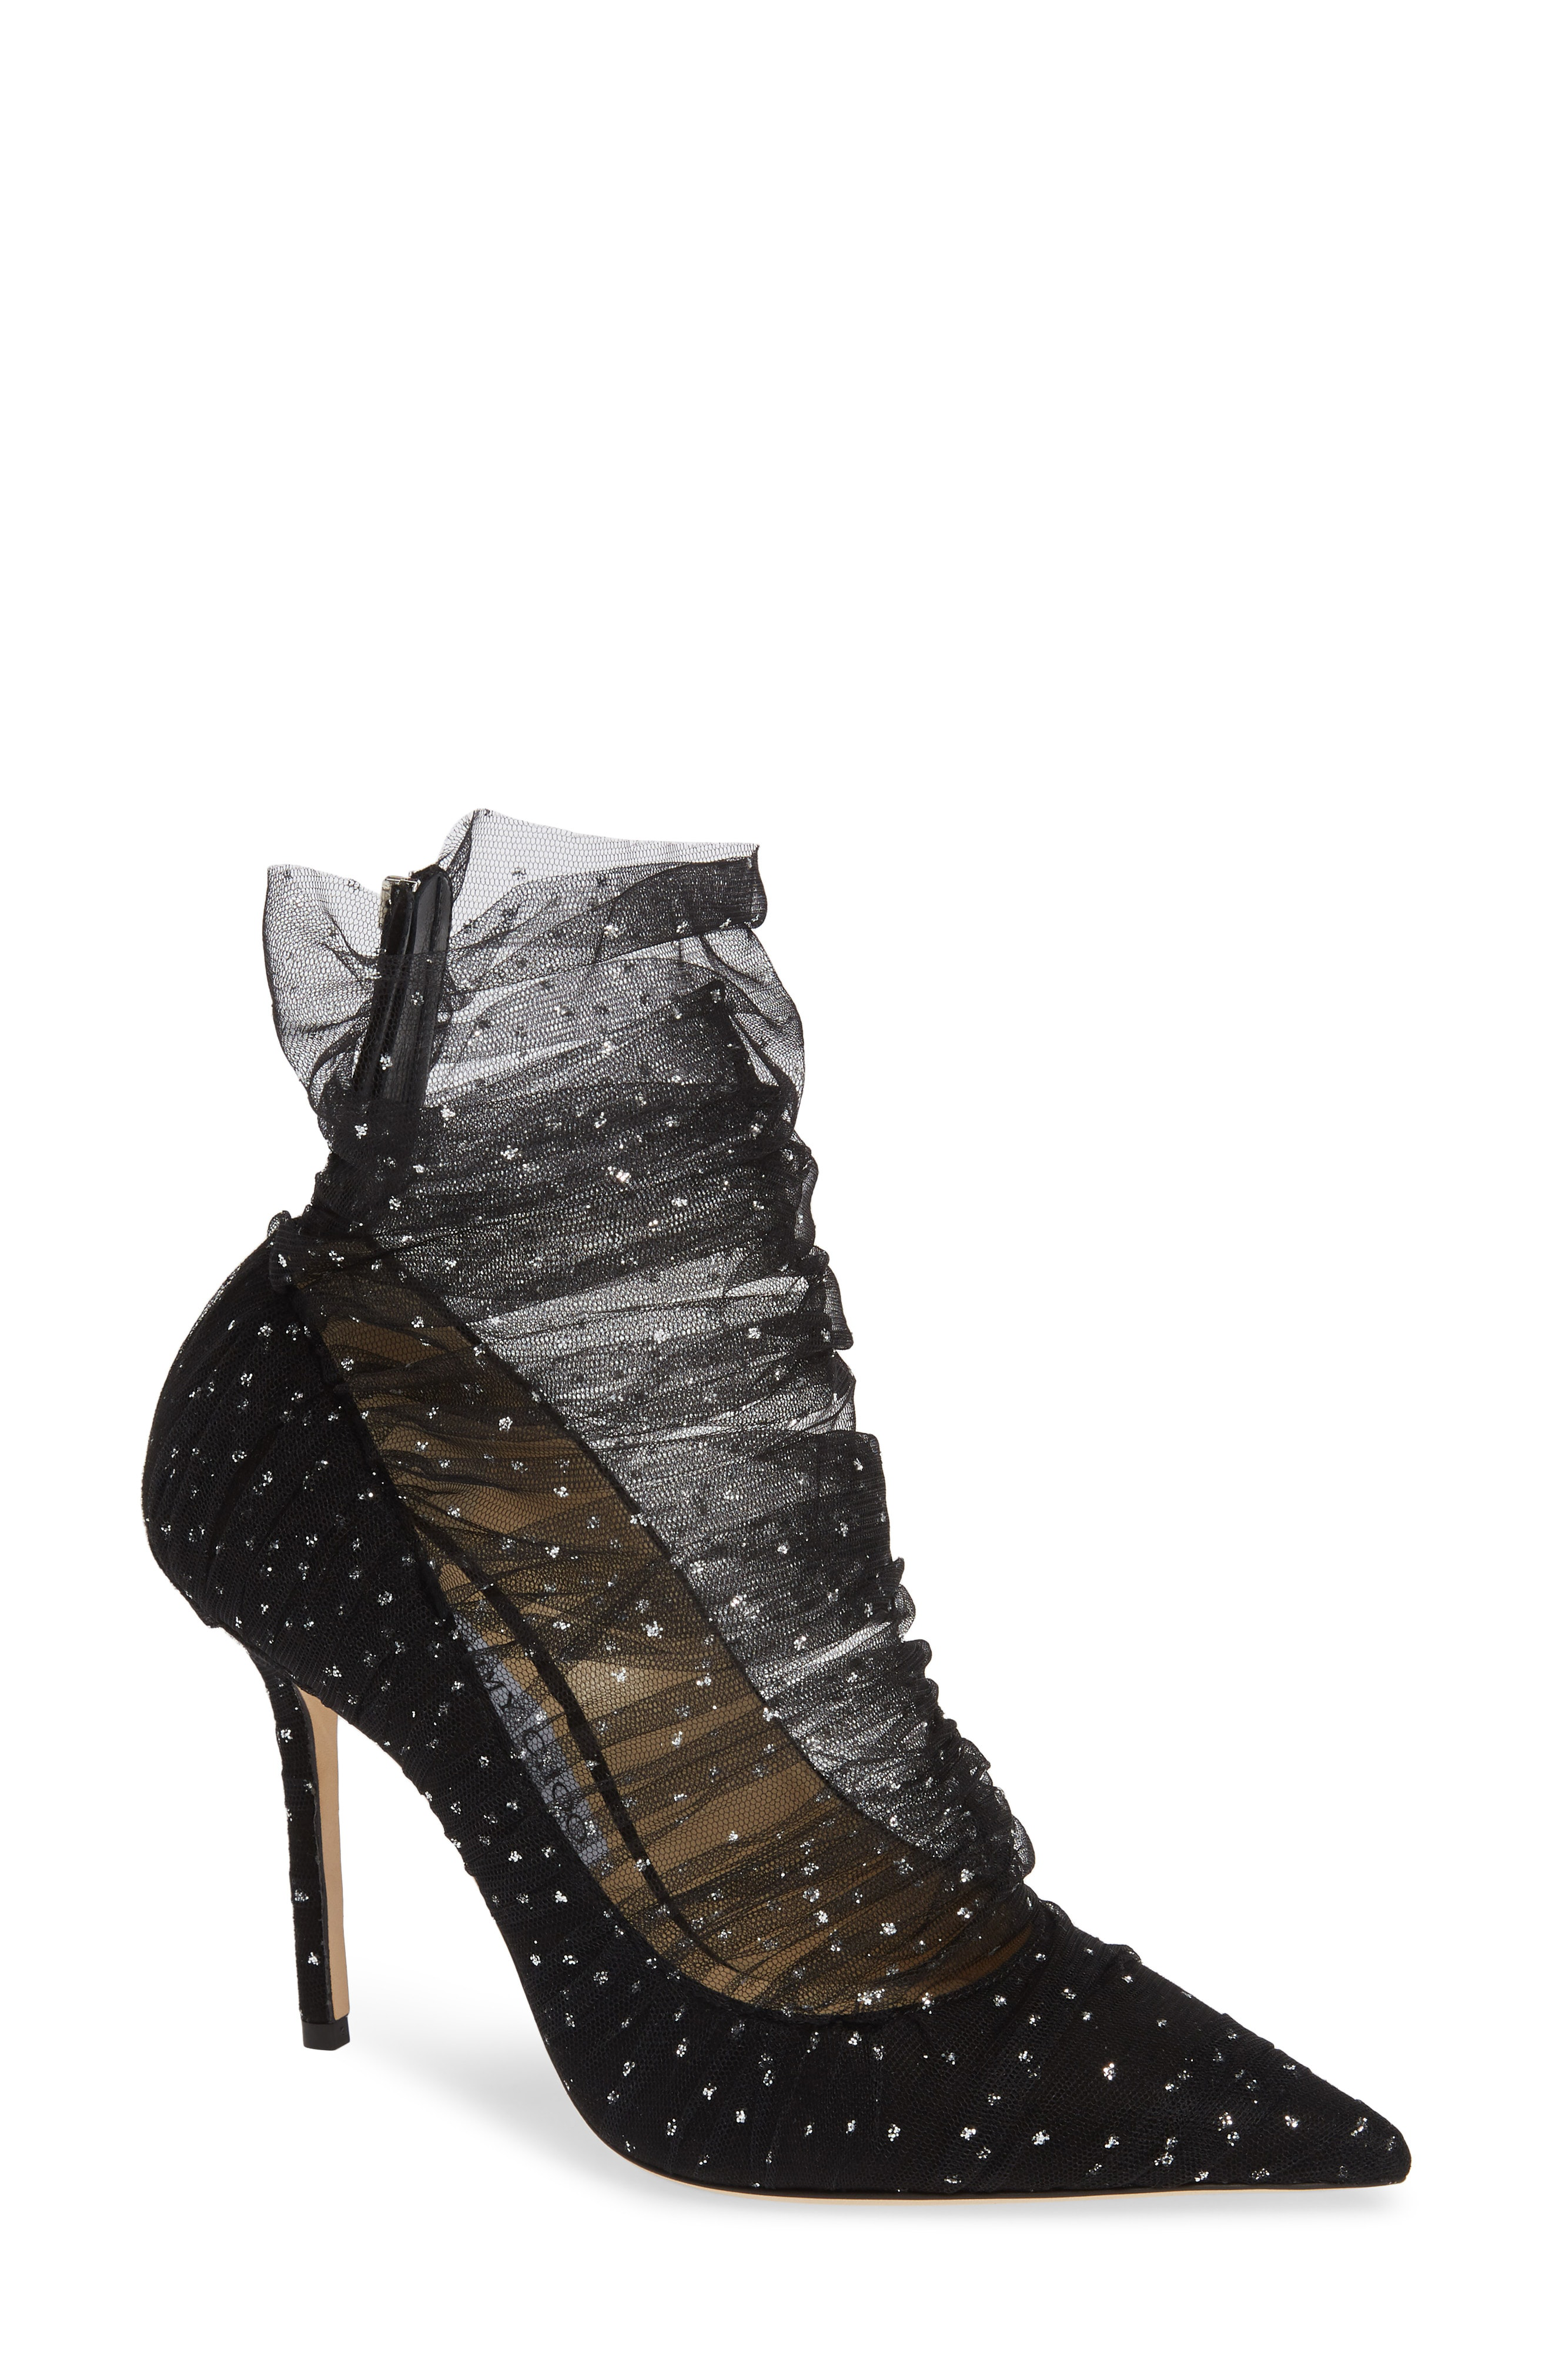 c8d7e00557fe Jimmy Choo Lavish 100 Black Suede Pump With Black And Silver Glitter Tulle  Overlay